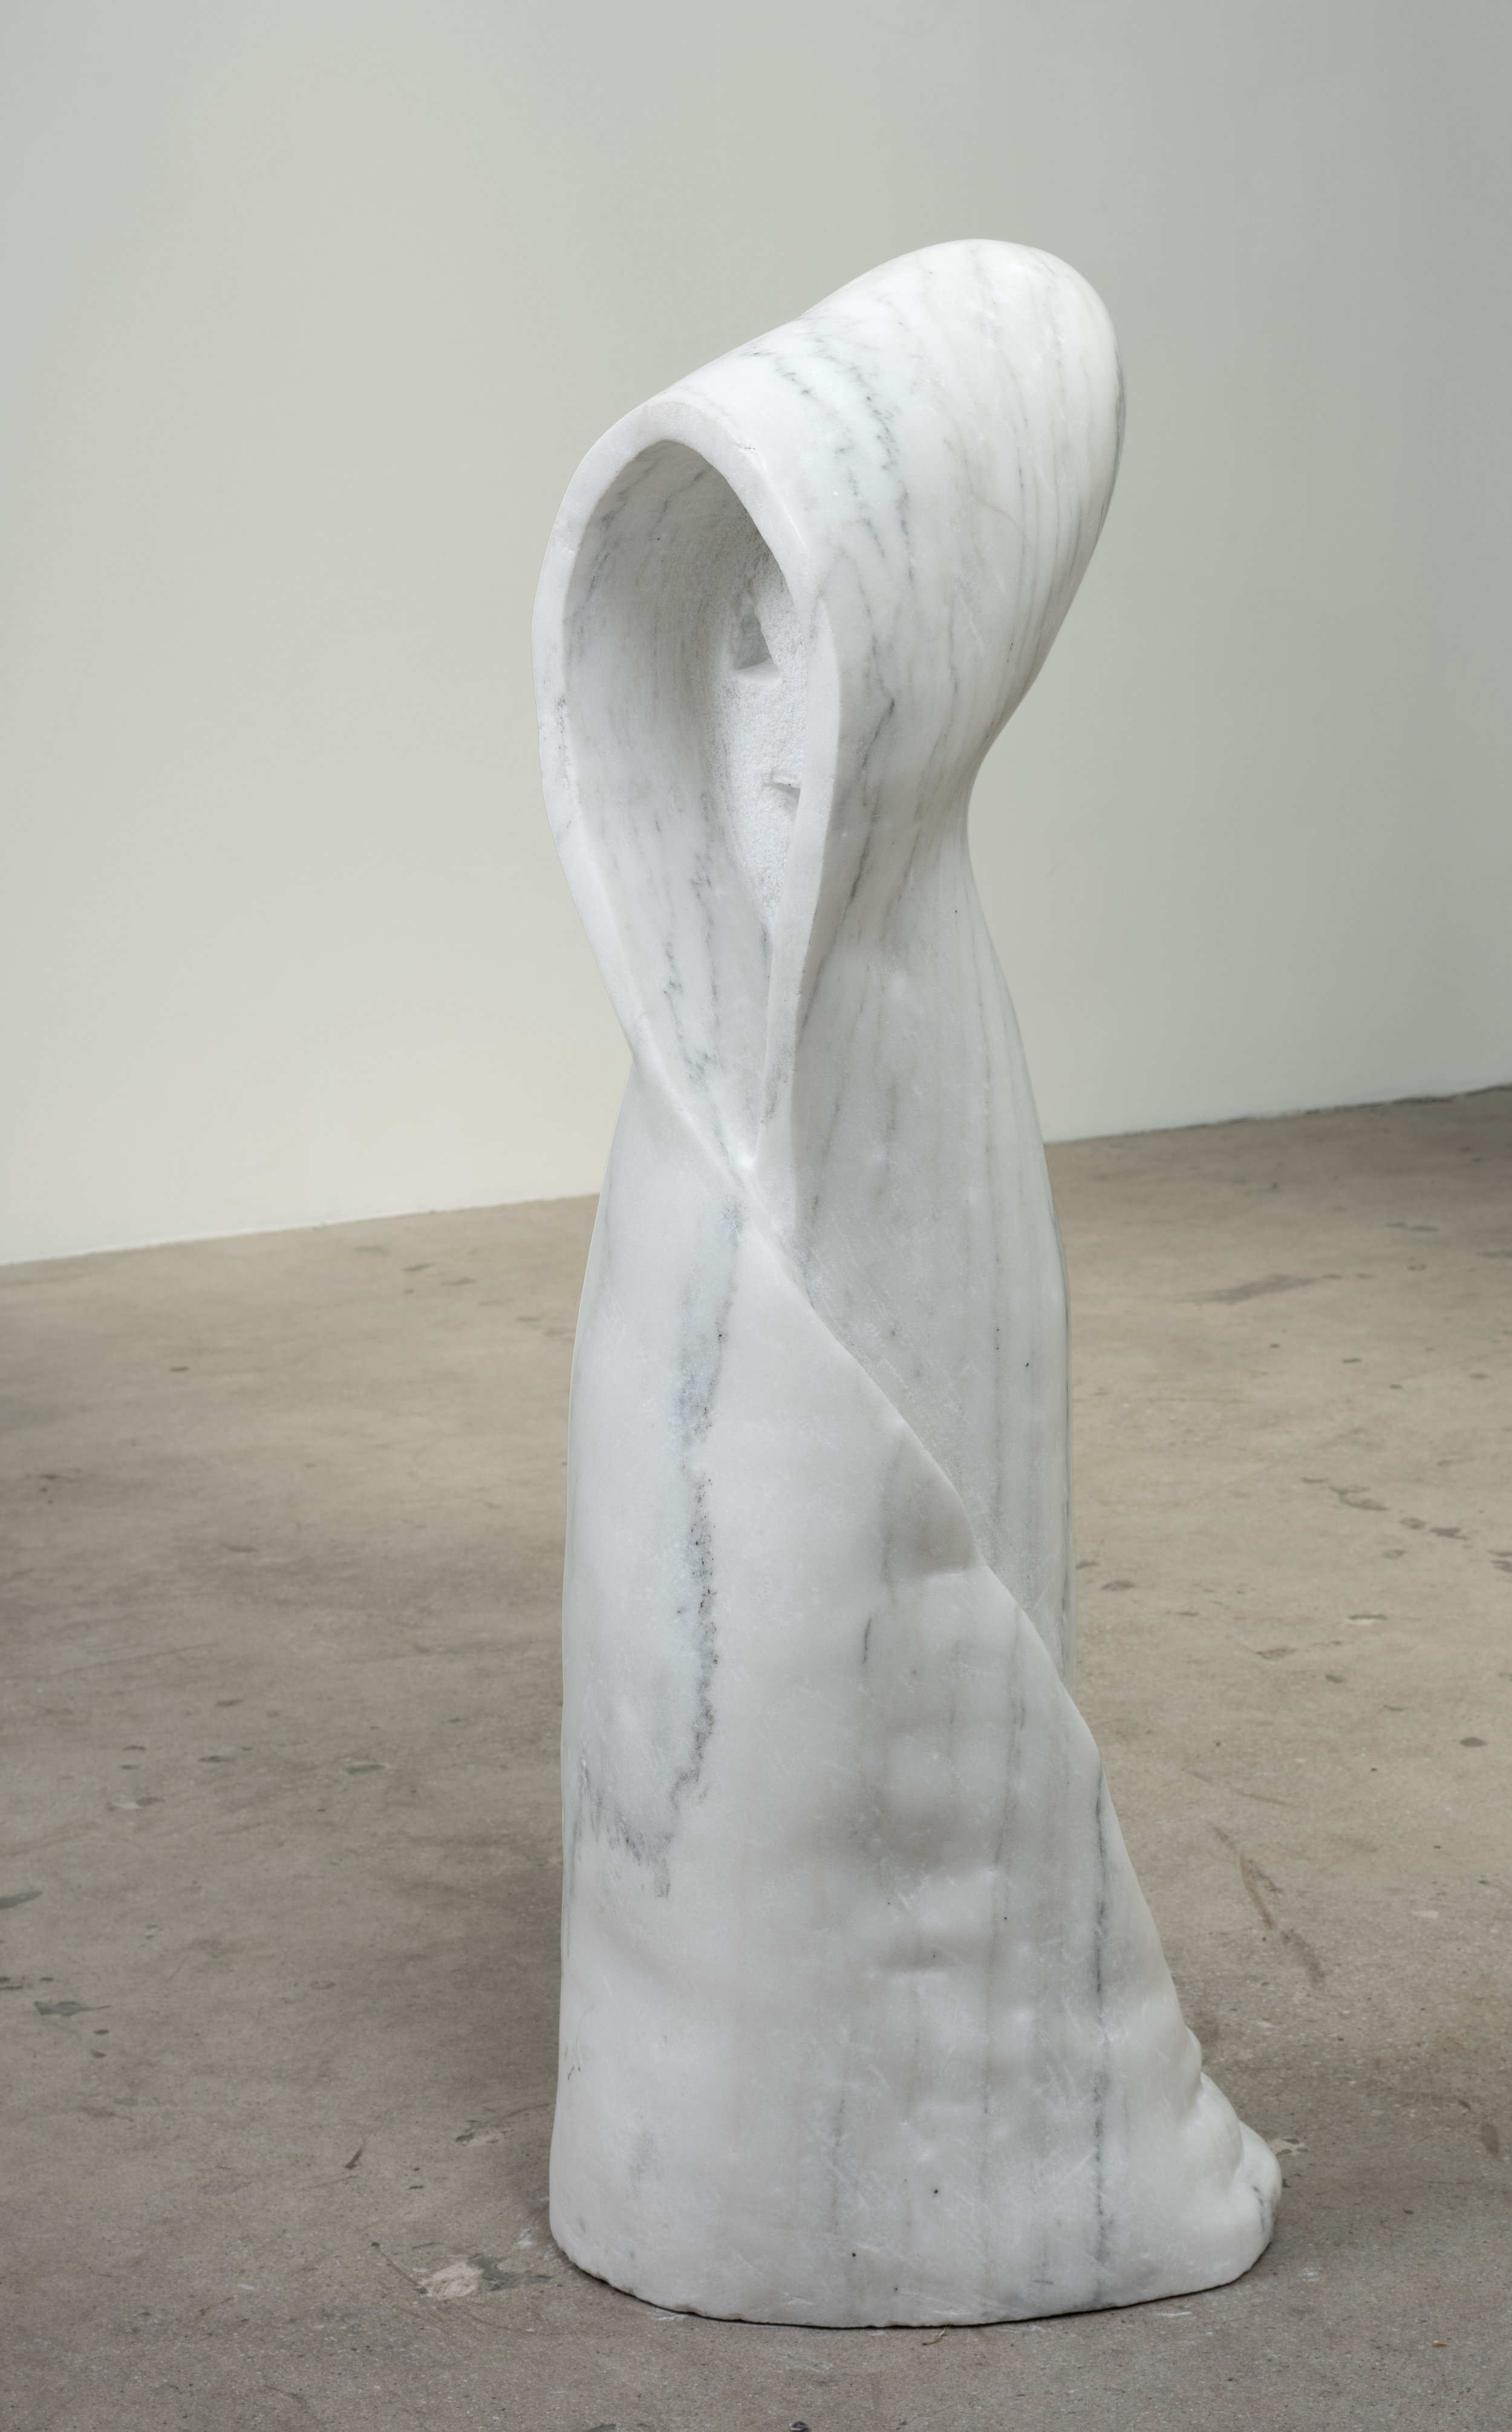 Dan Catucci  Tutelary, lost , 2019 Marble 40 x 14 x 16 inches